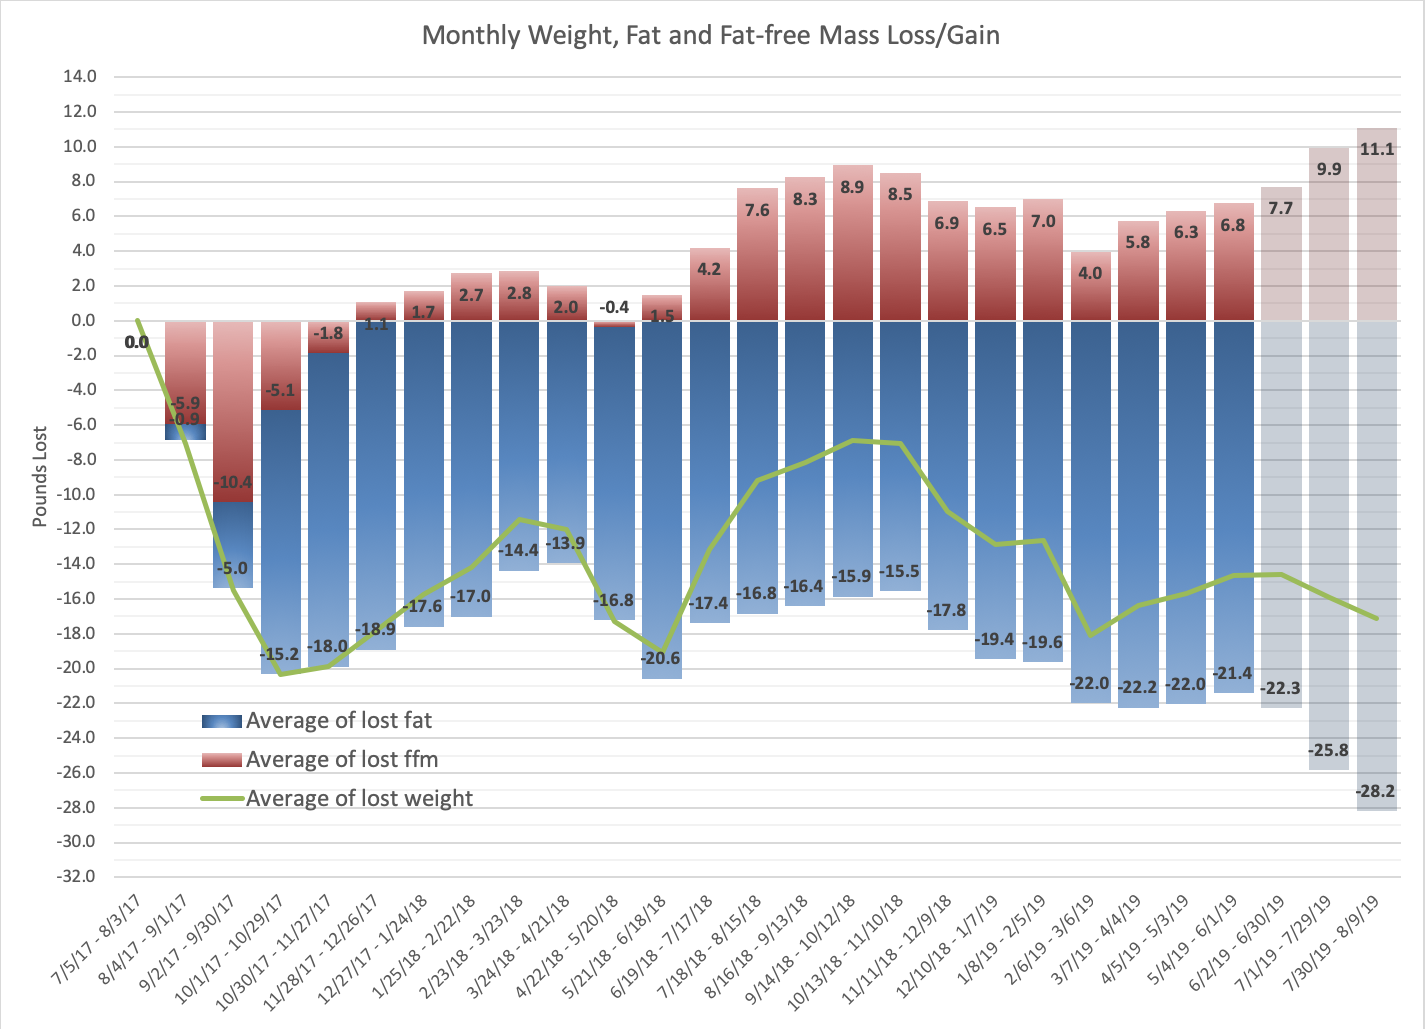 Monthly Weight, Fat and Fat-free Mass Loss/Gain